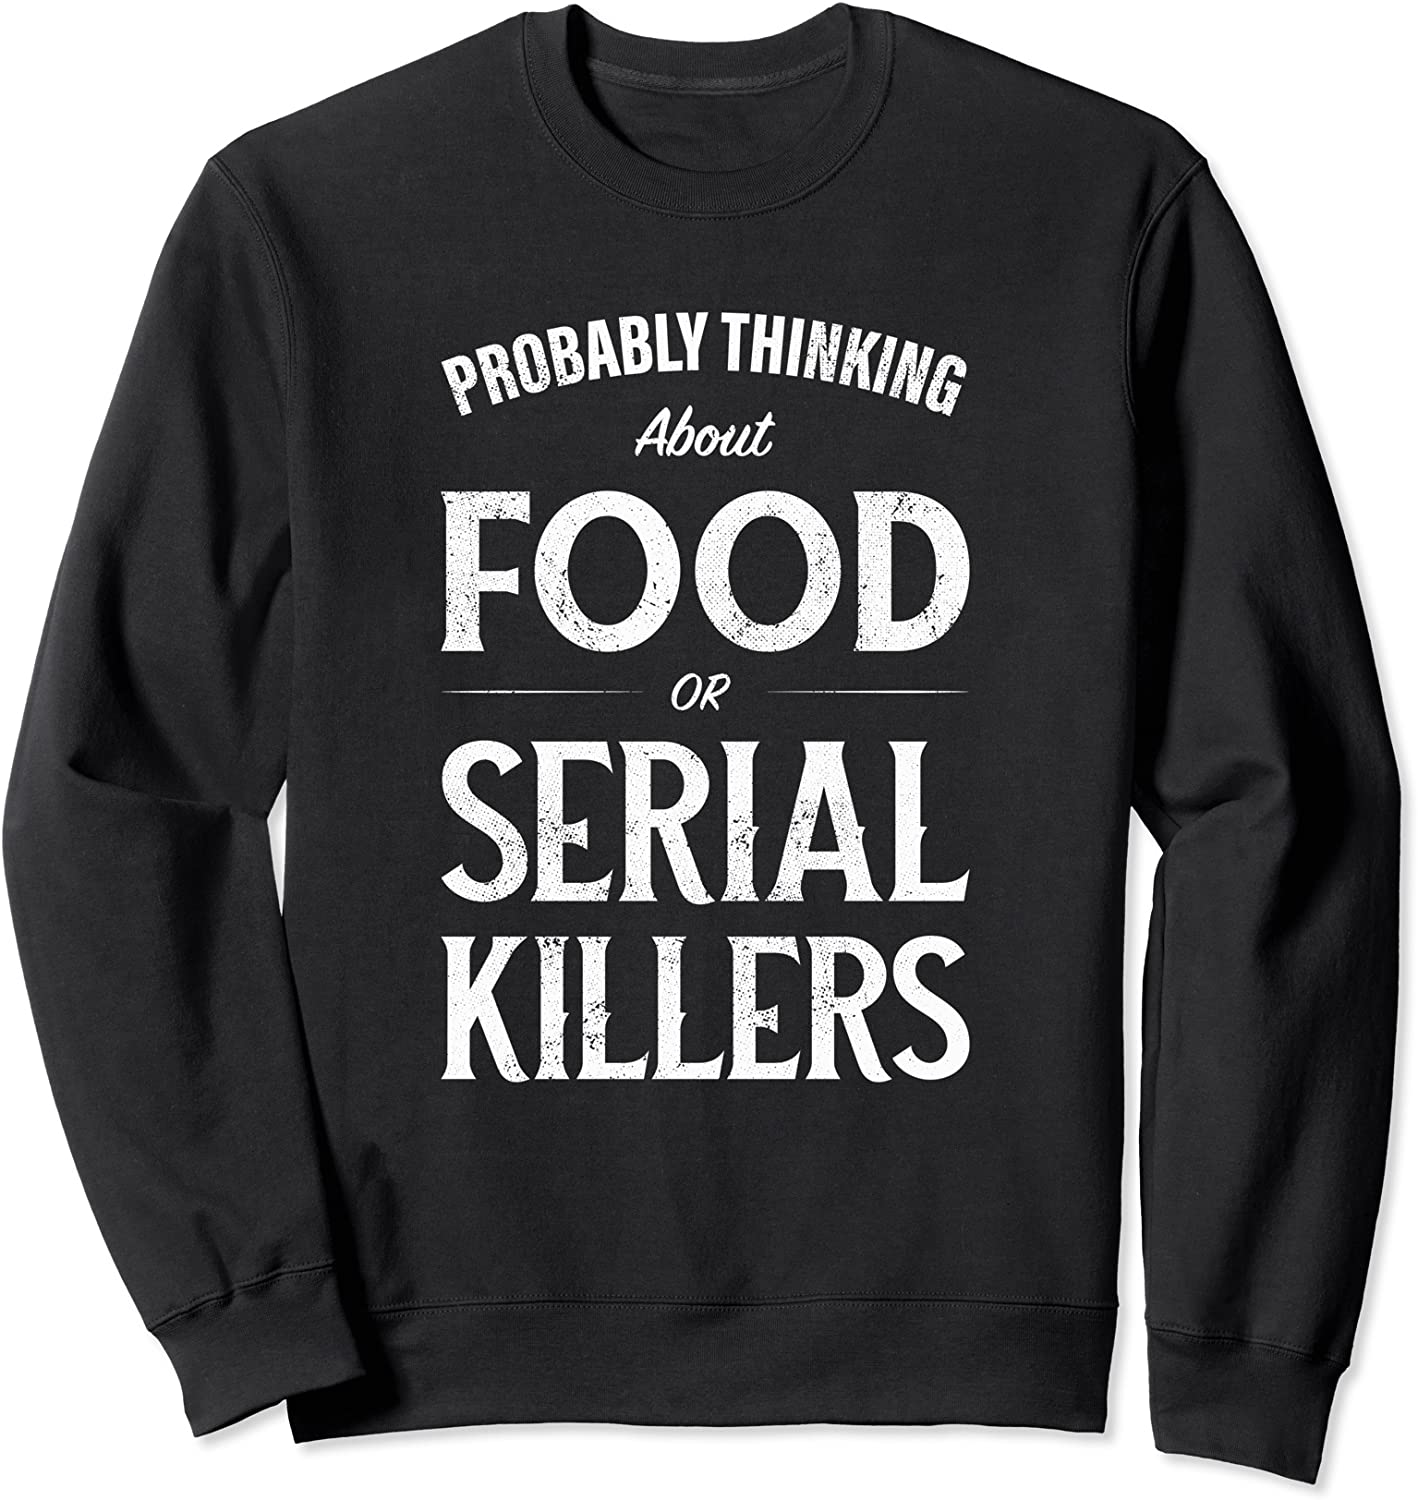 Probably Thinking About Food or Serial Killers Sweatshirt